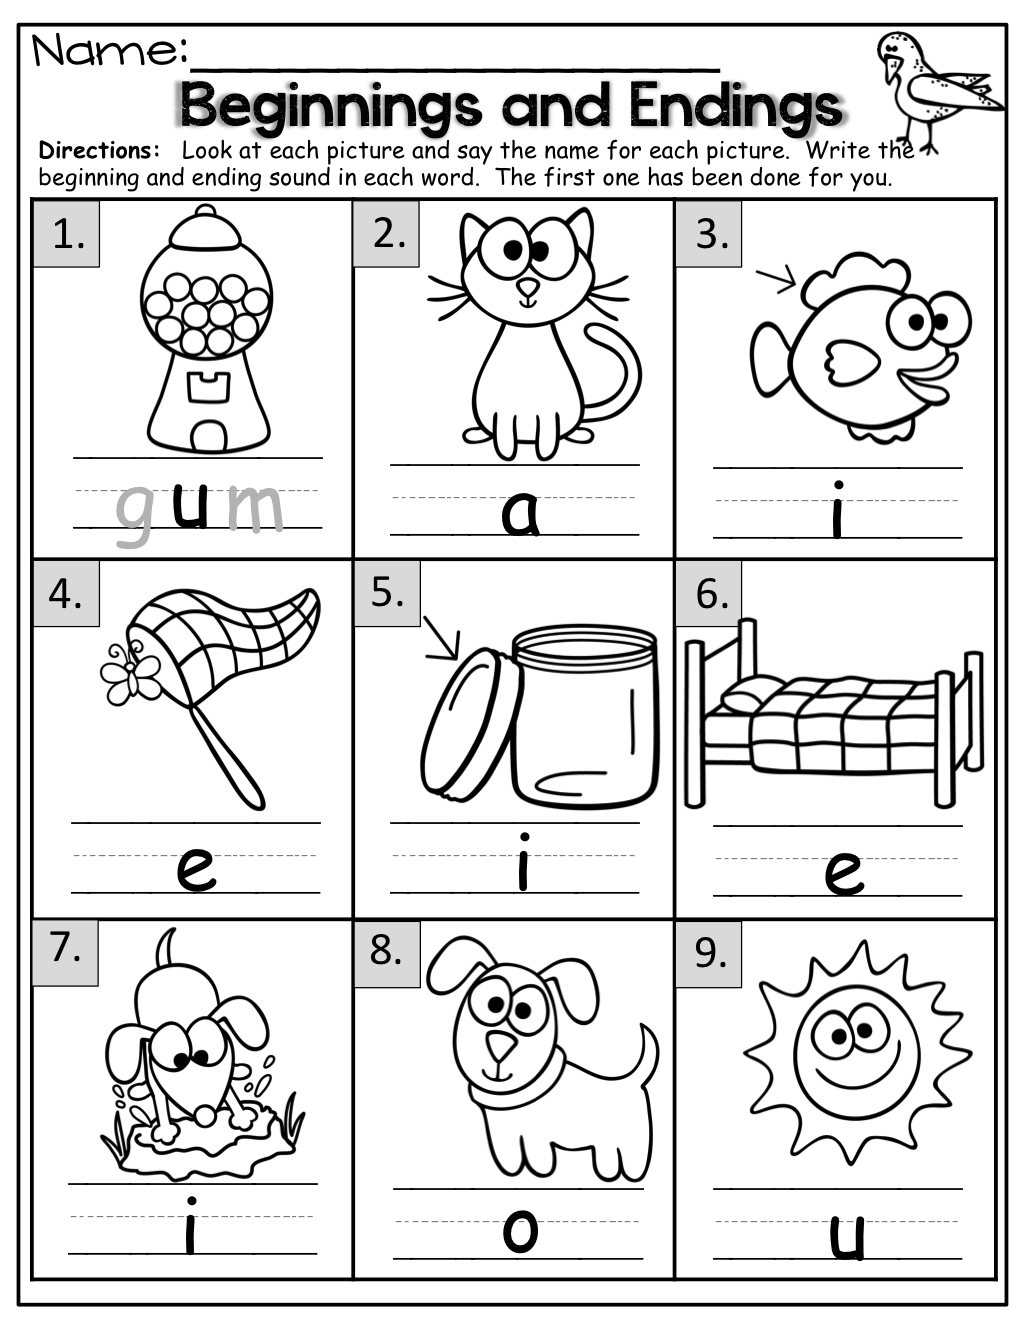 Worksheet Fun For Kindergarten